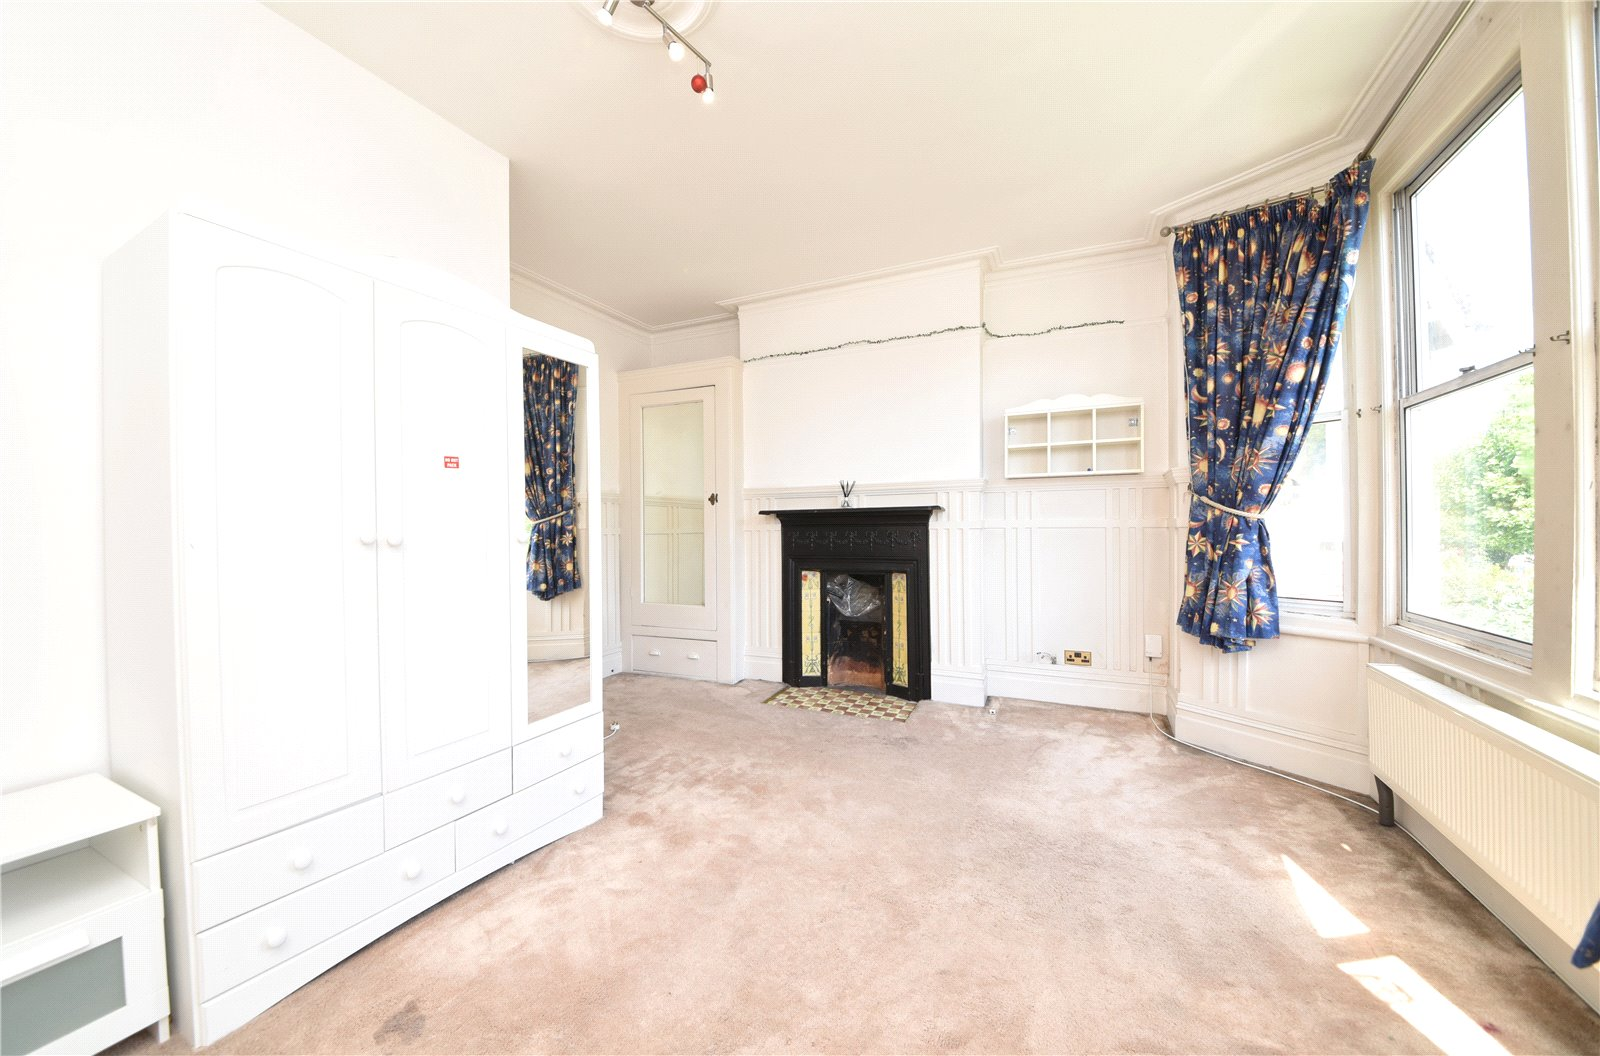 4 bed house for sale in Finchley, N3 2AR 6